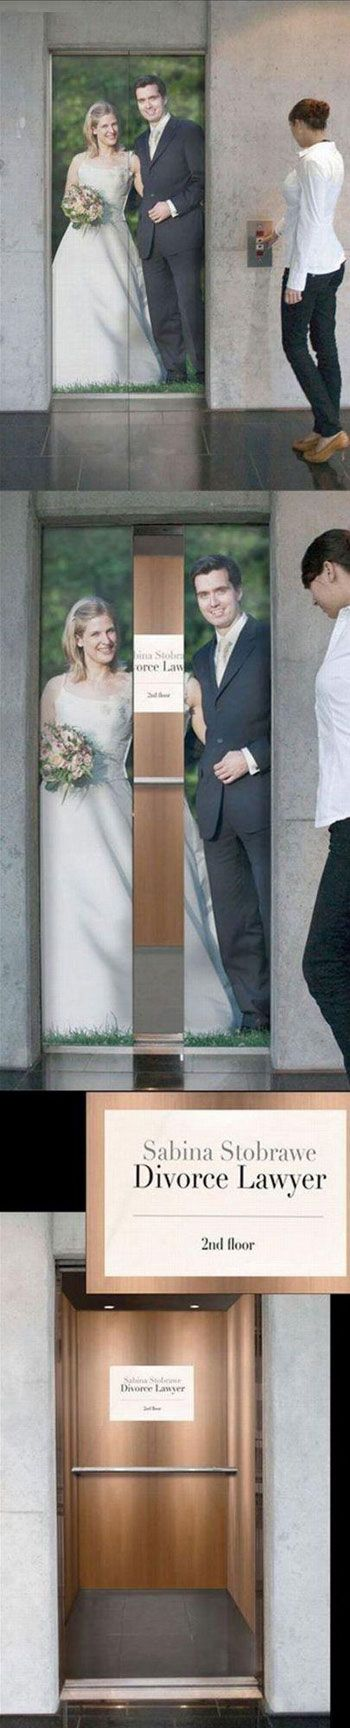 #clever #advertising